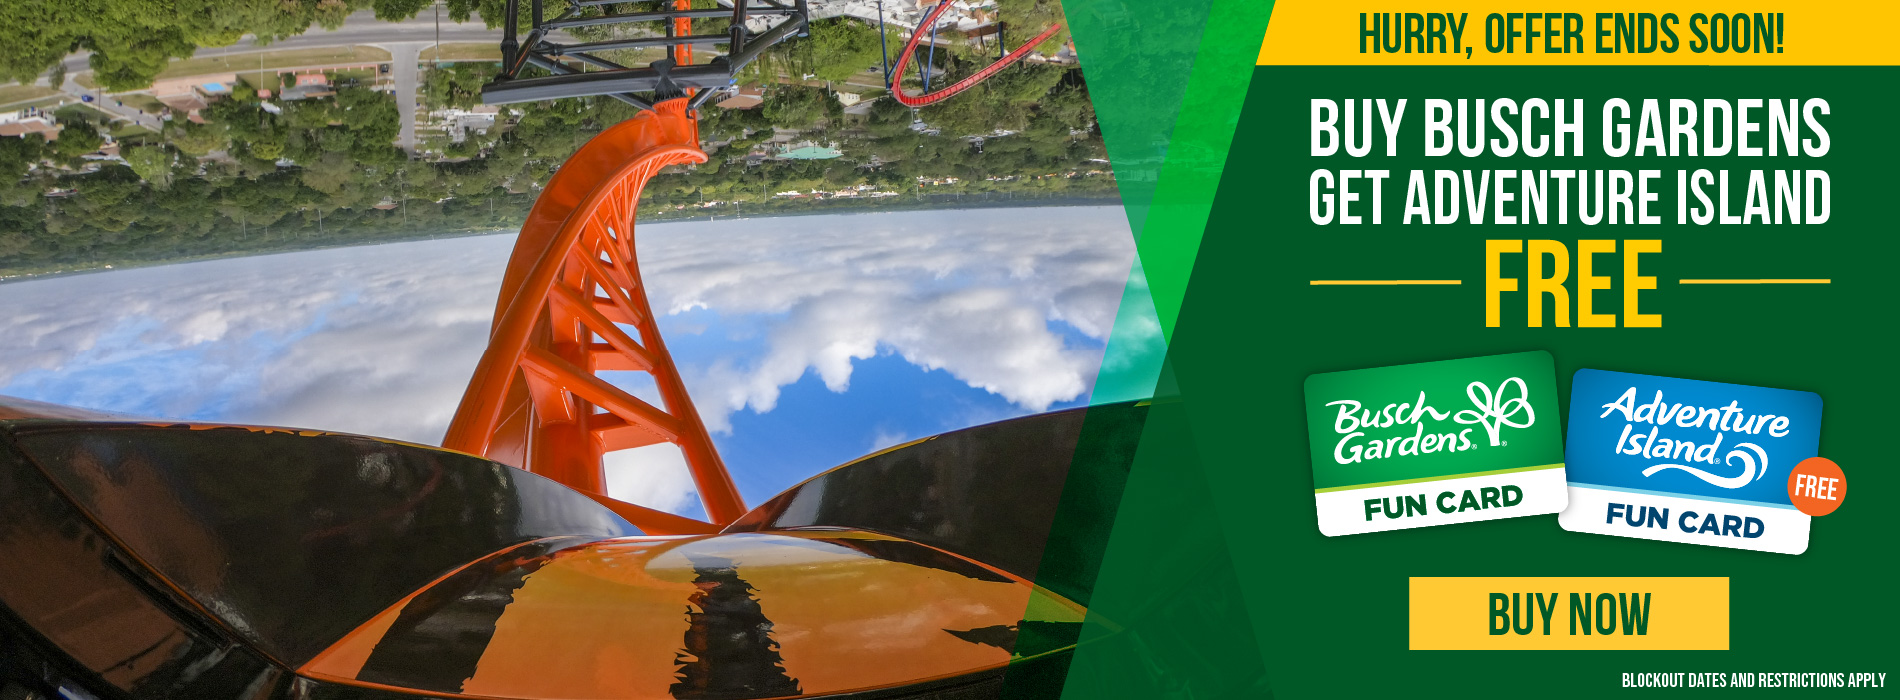 Buy Busch Gardens Get Adventure Island Free. Hurry Offer Ends Soon!